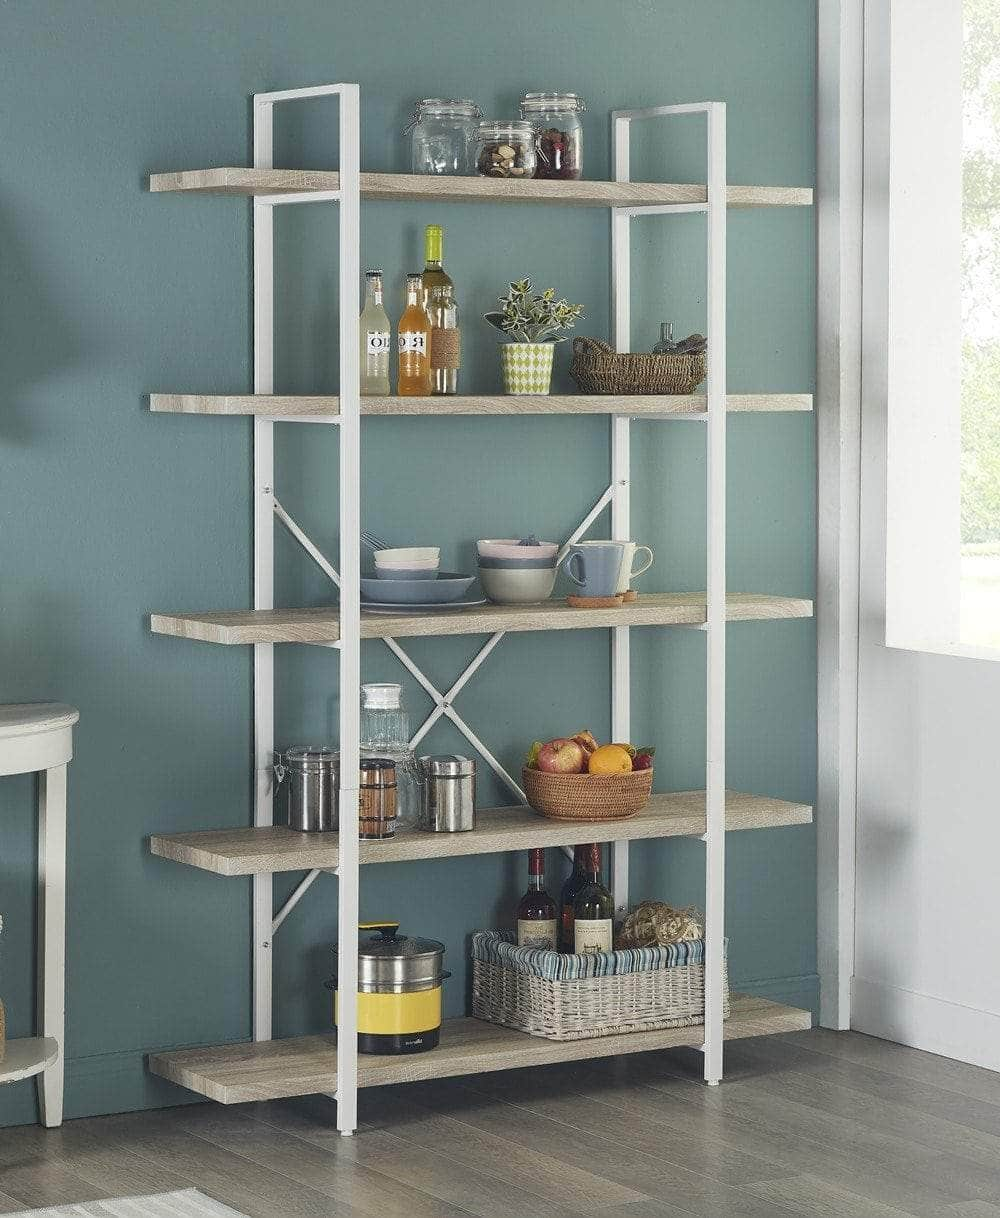 Try homissue 5 shelf modern style bookshelf light oak shelves and white metal frame display storage rack for collection 70 0 inch height